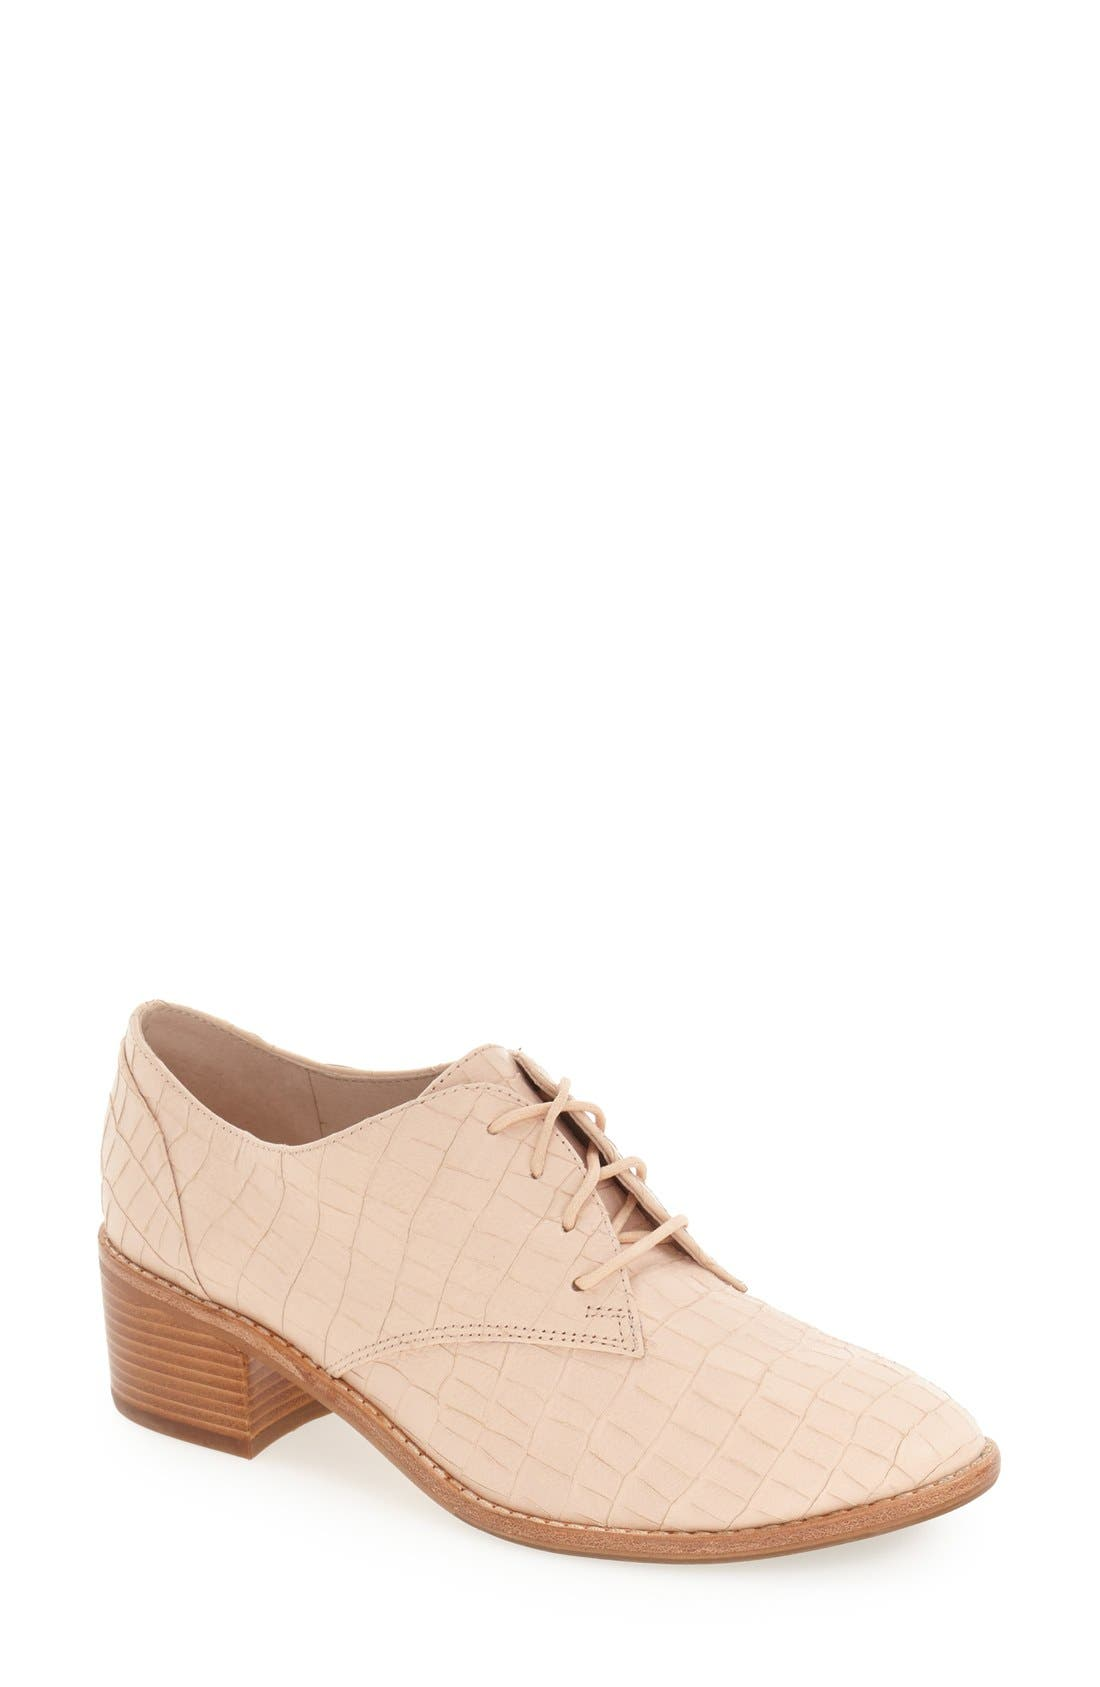 Alternate Image 1 Selected - Louise et Cie 'Finch' Oxford (Women)